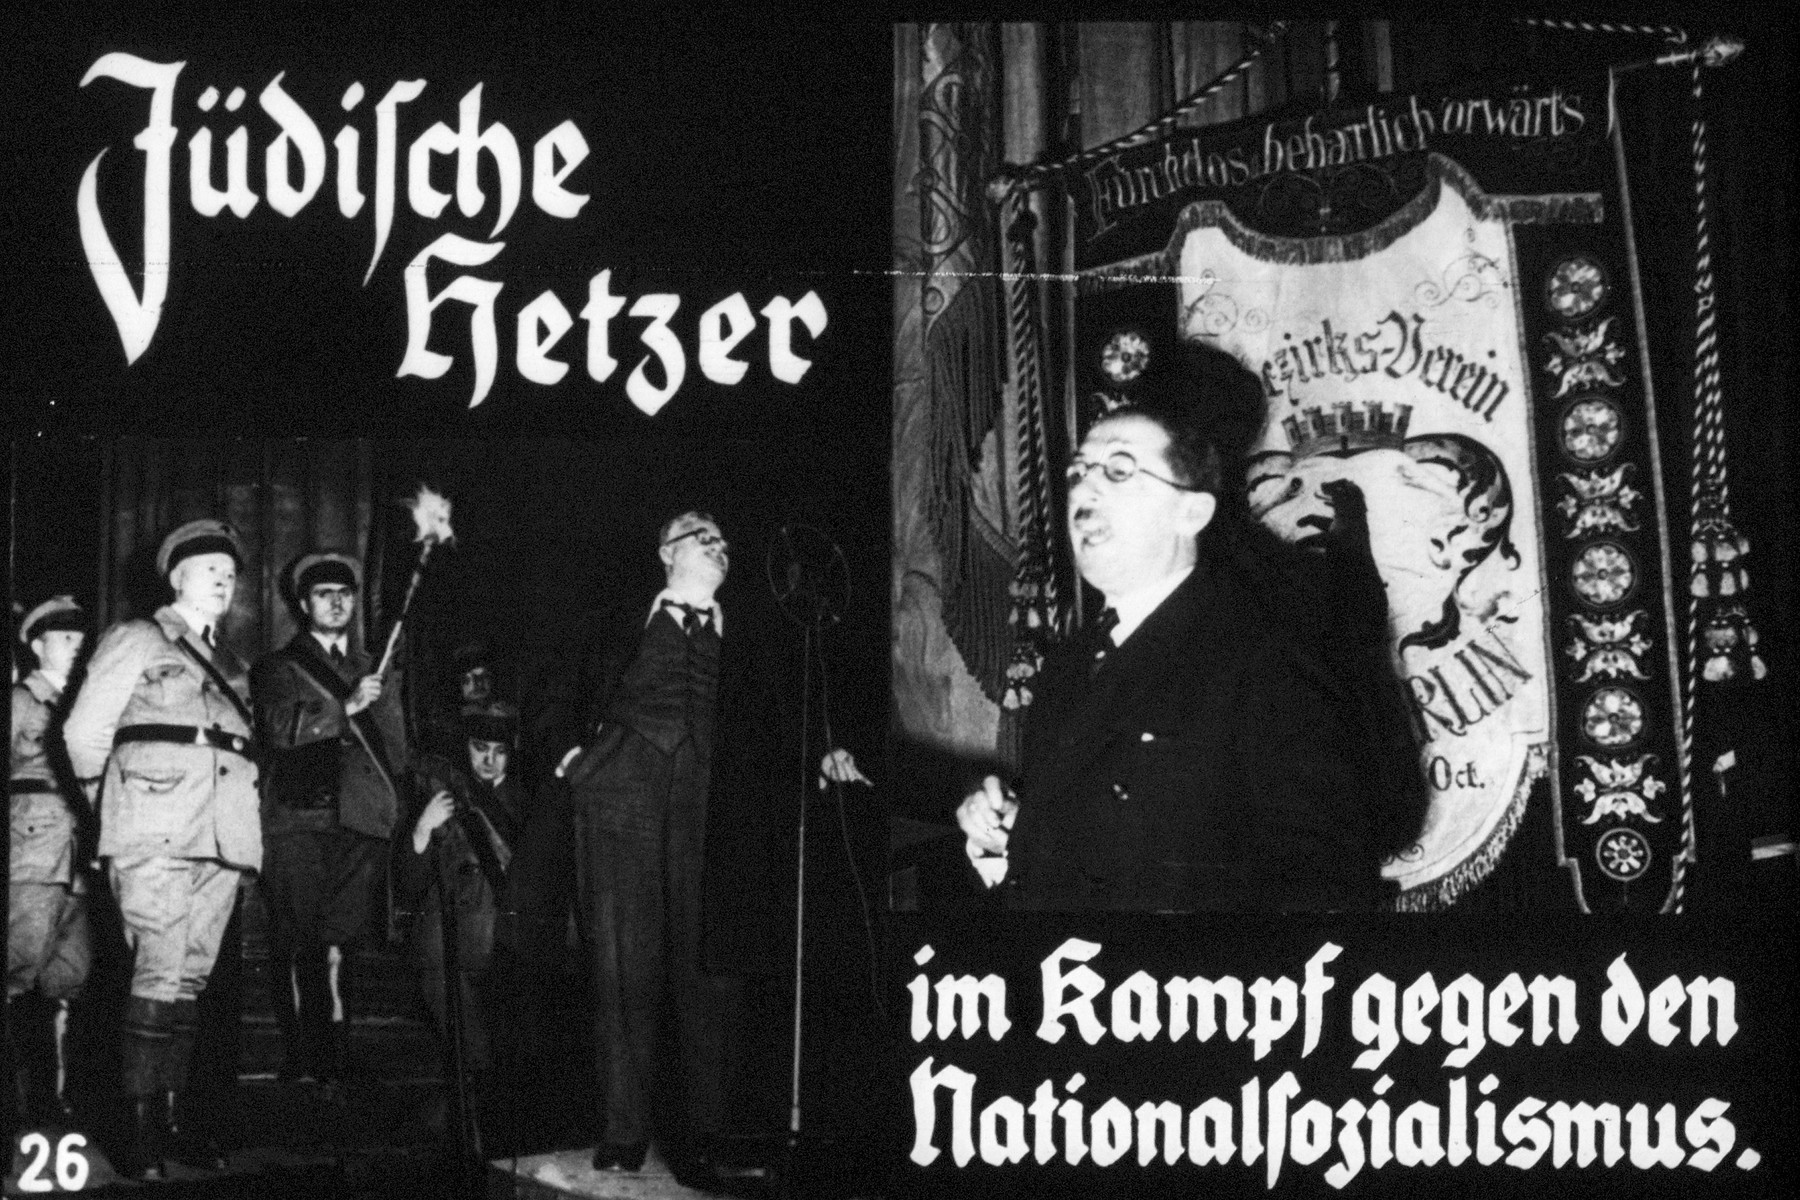 "26th Nazi propaganda slide of a Hitler Youth educational presentation entitled ""Germany Overcomes Jewry.""  Jüdische Hetzer im Kampf gegen den Nationalsozialismus. // Jewish Agitators in the fight against National Socialism."